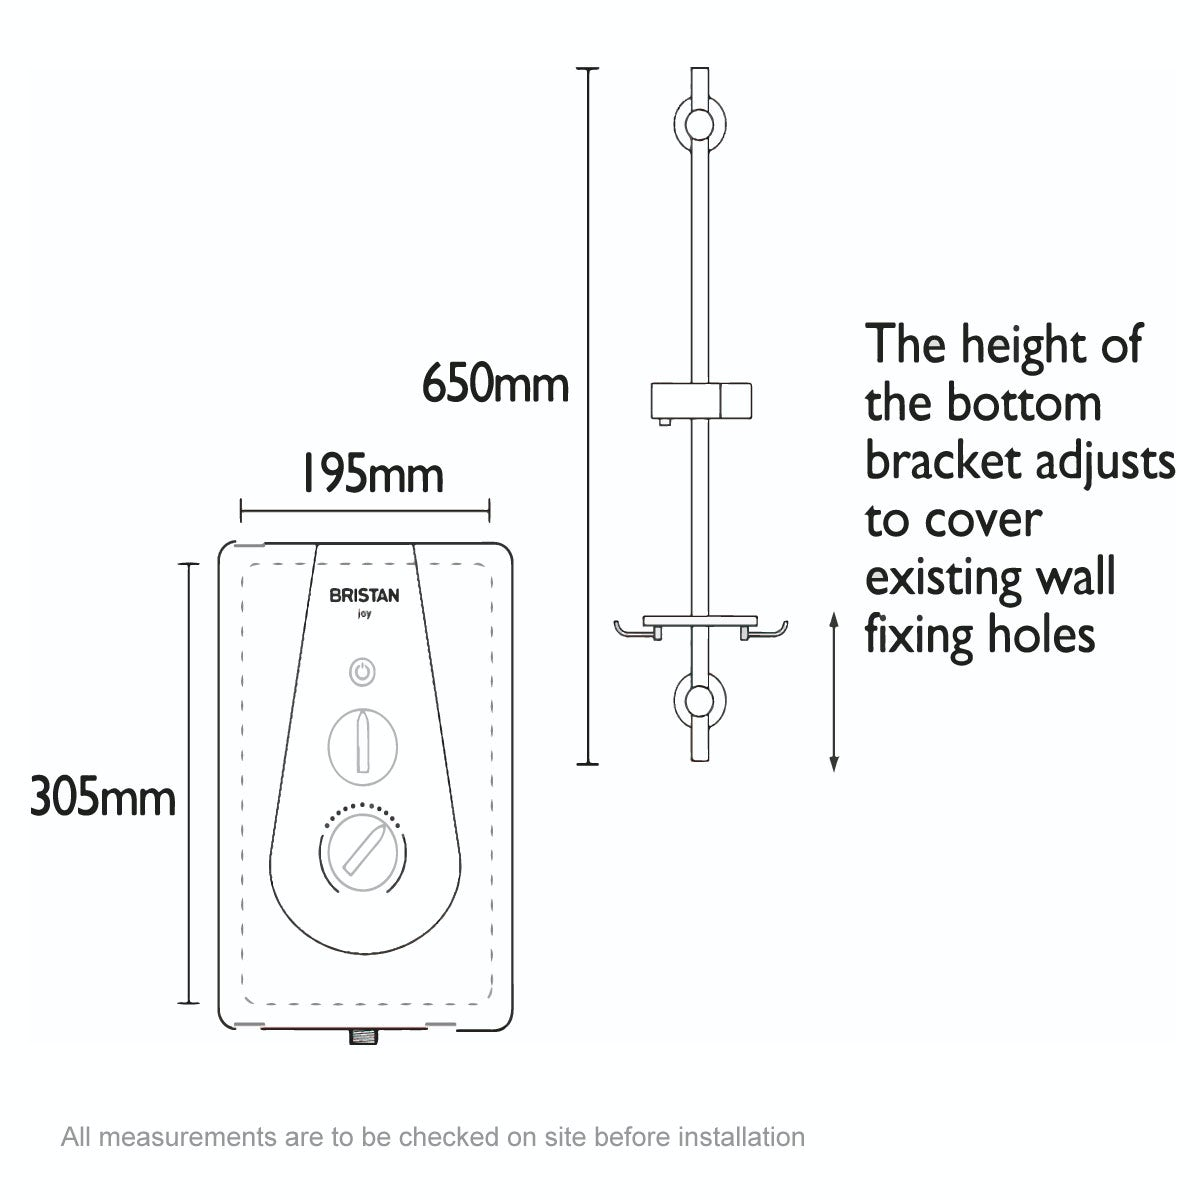 Dimensions for Bristan Joy 8.5kw thermostatic electric shower white